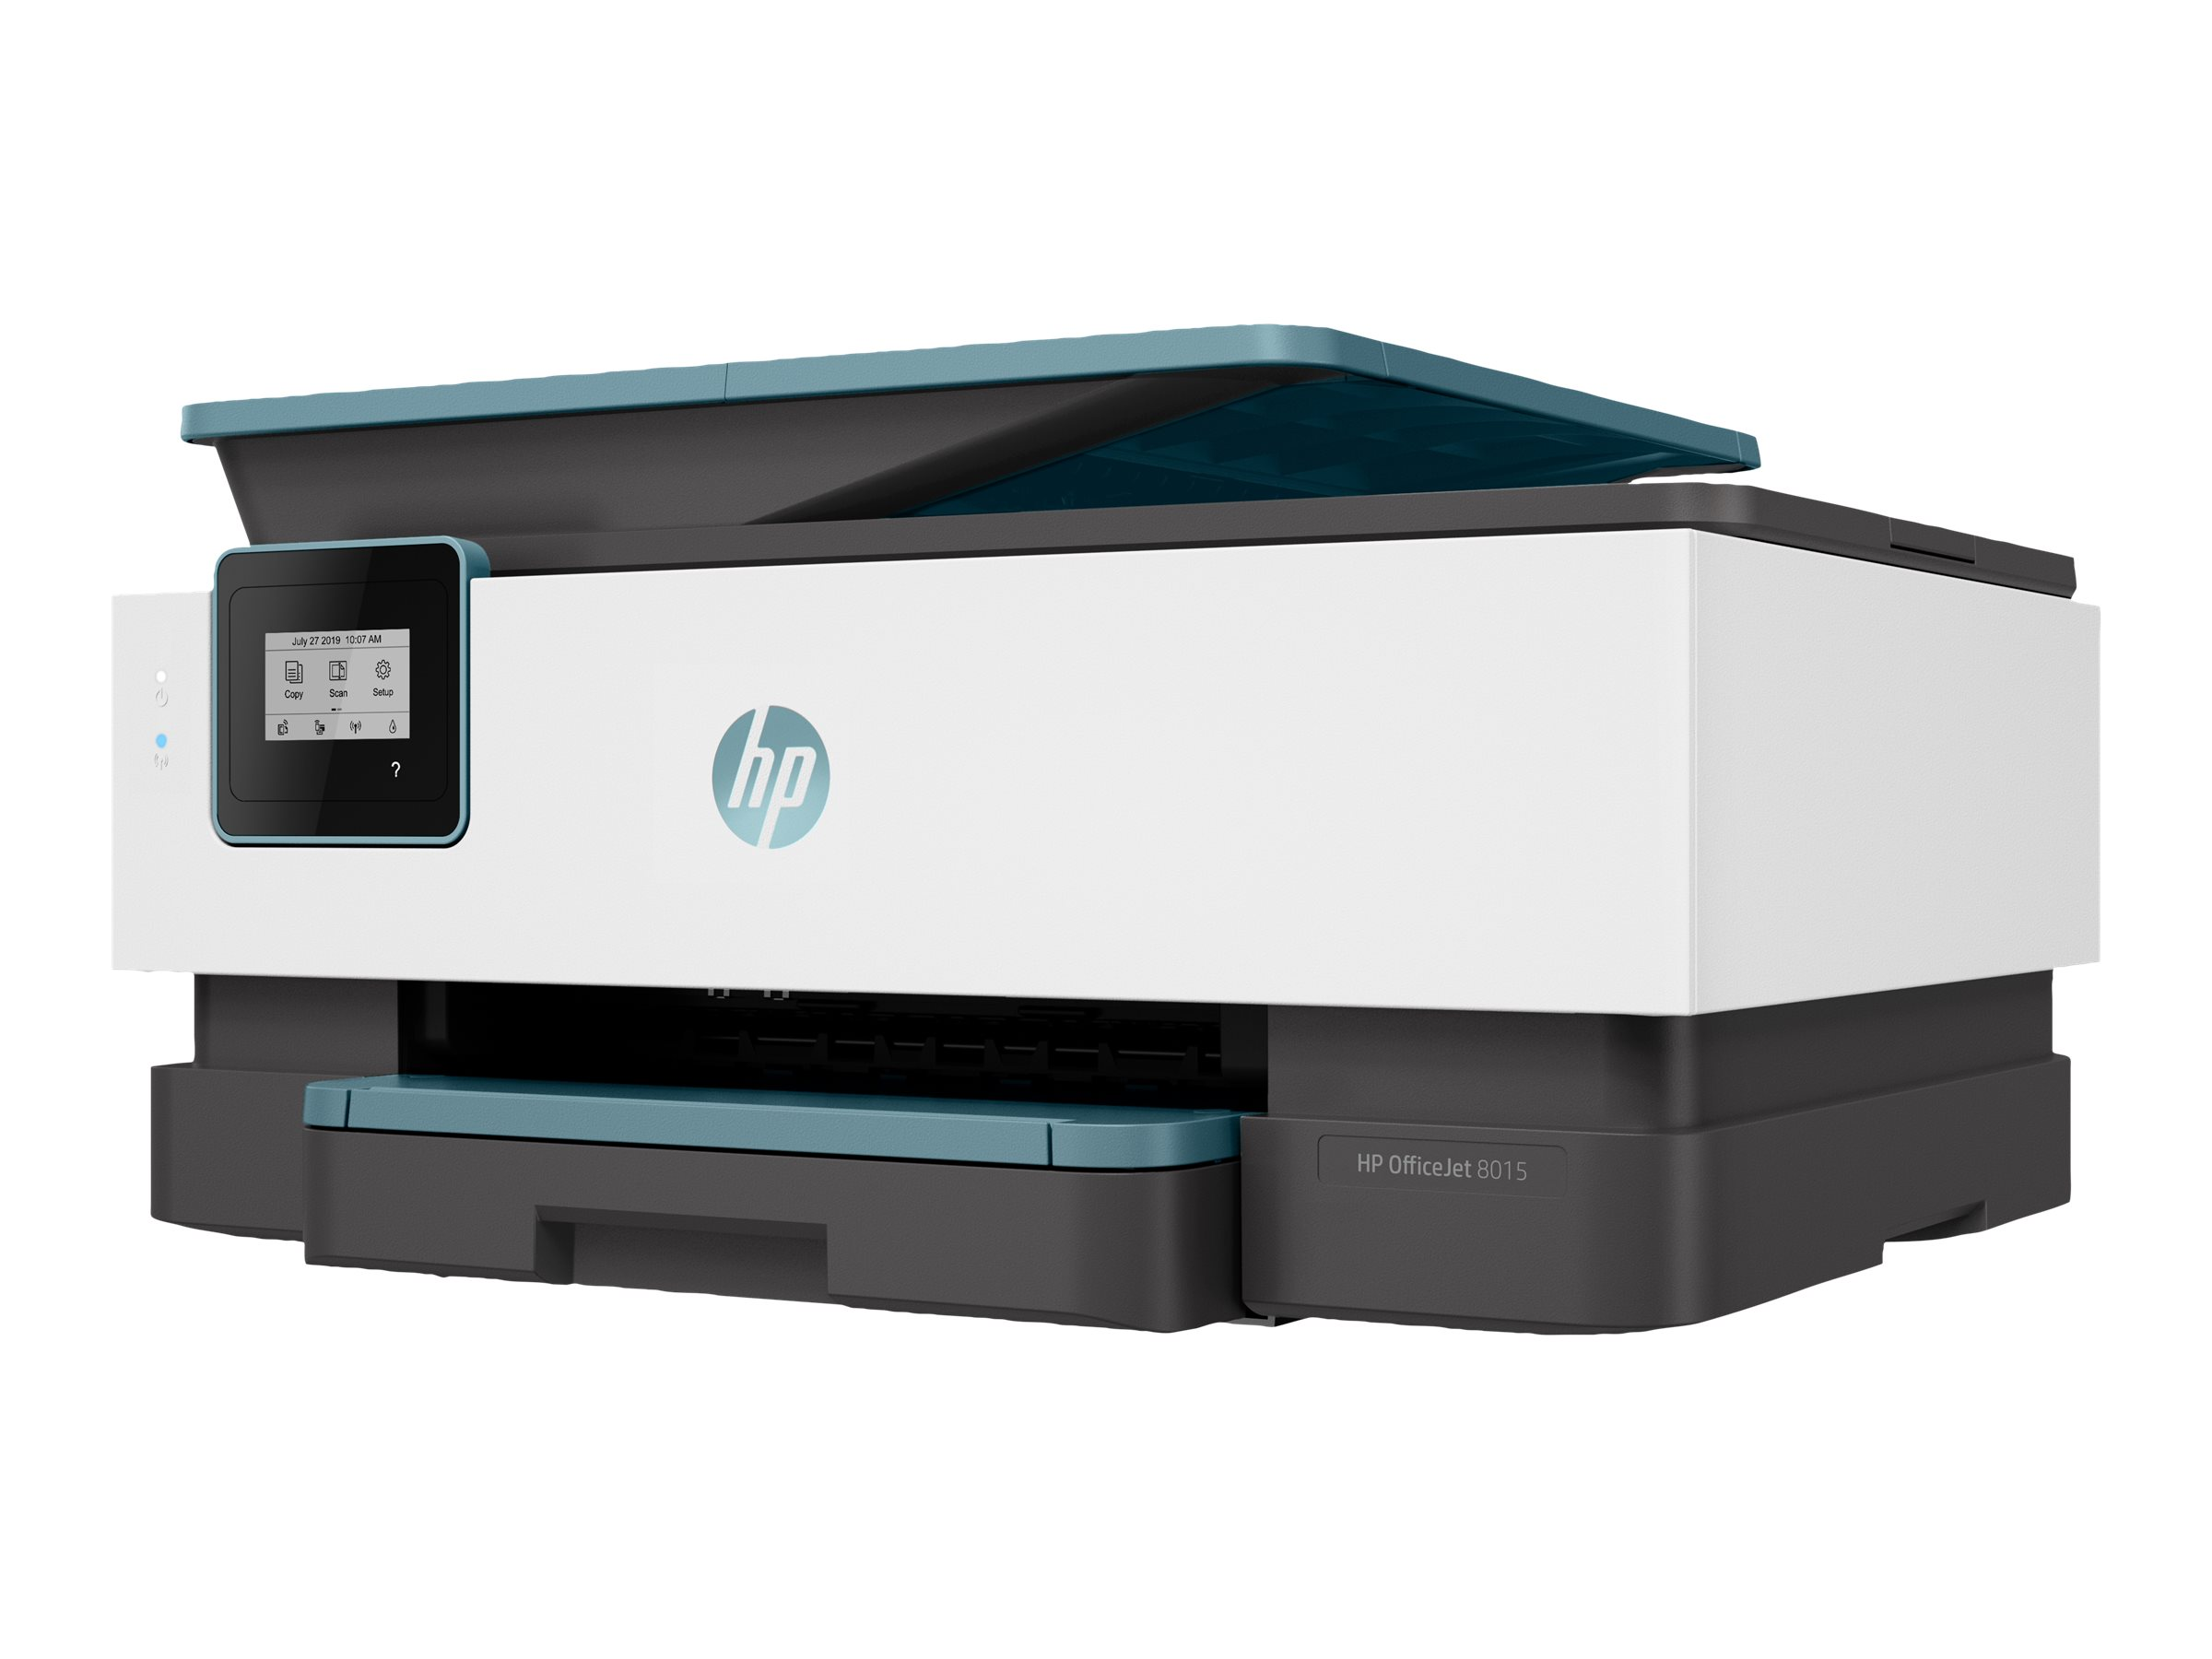 HP Officejet 8015 All-in-One - Multifunktionsdrucker - Farbe - Tintenstrahl - A4 (210 x 297 mm)